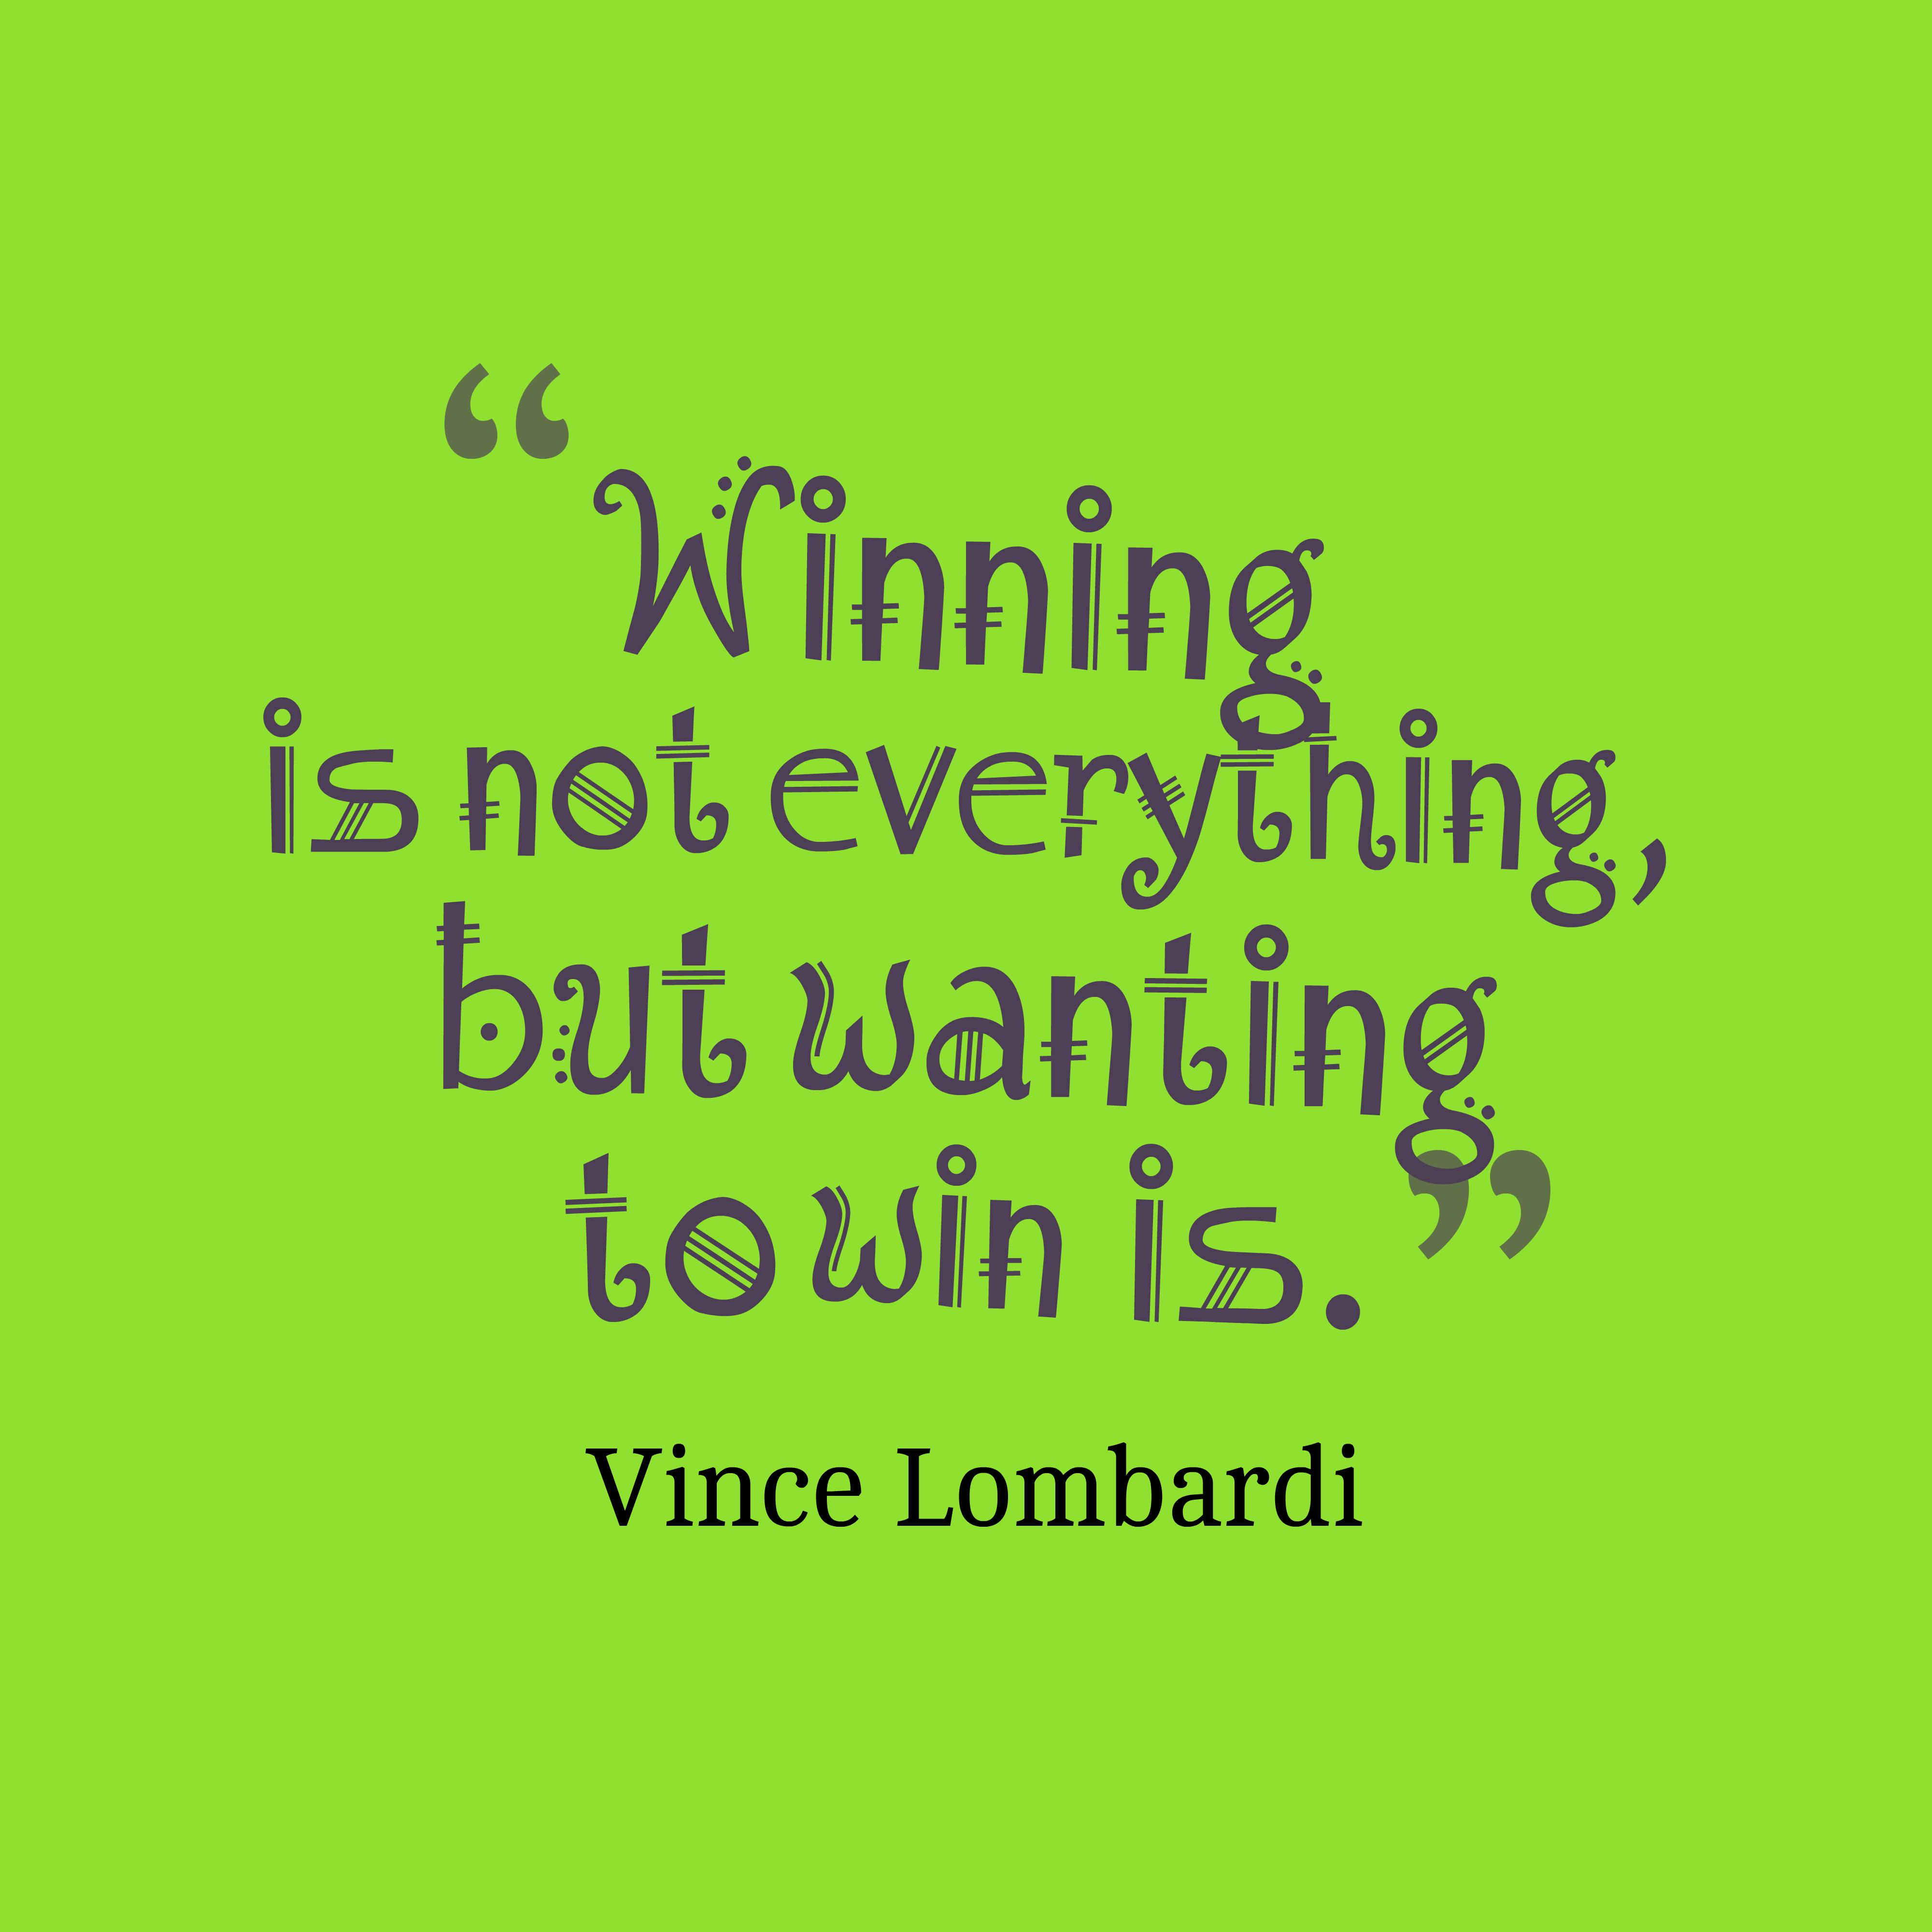 Try Not To Take Things Personally: Vince Lombardi Quote Wisdom